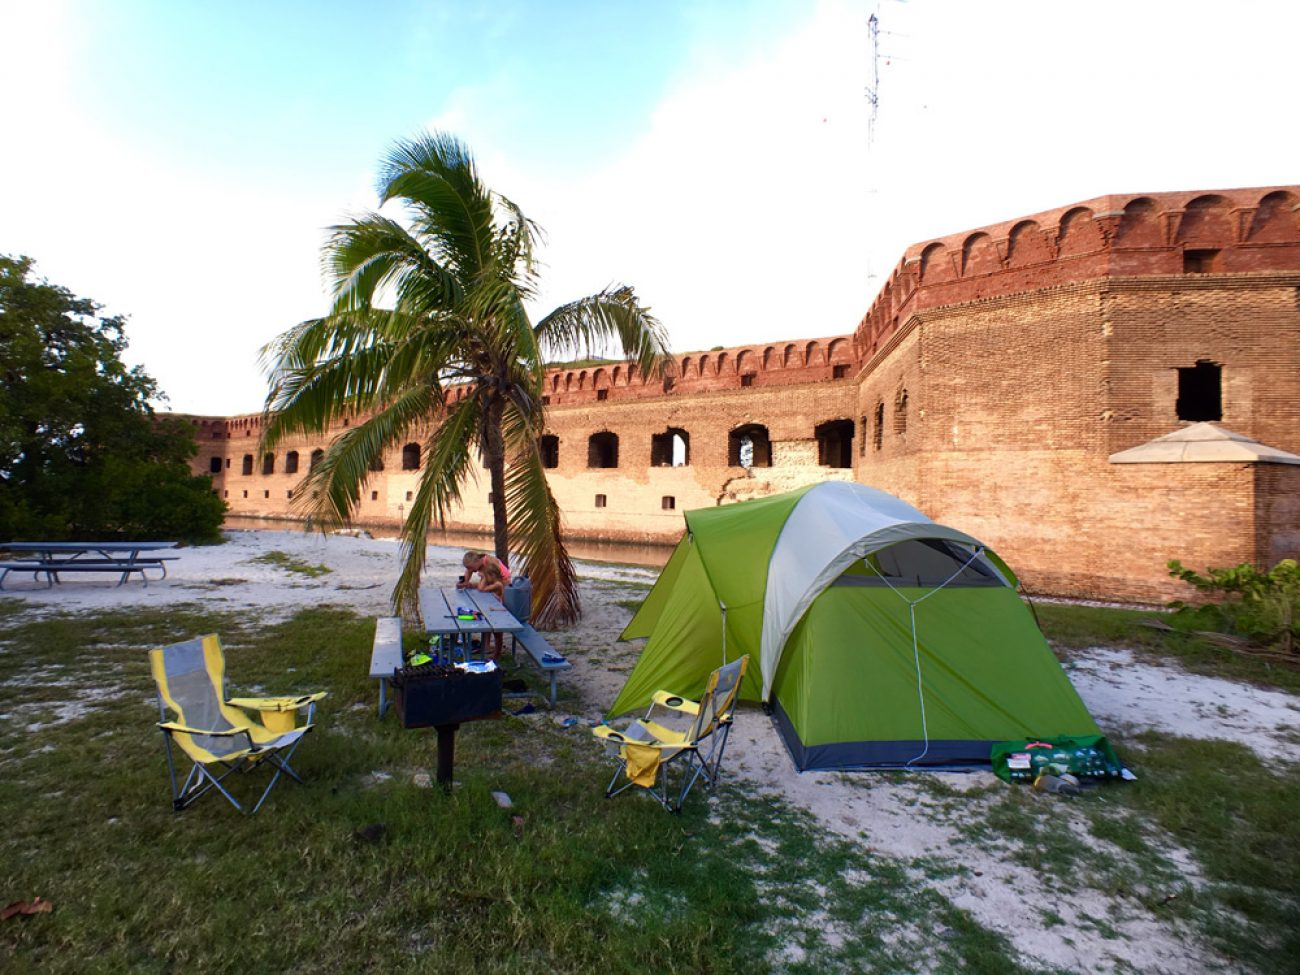 Campsite at Dry Tortugas